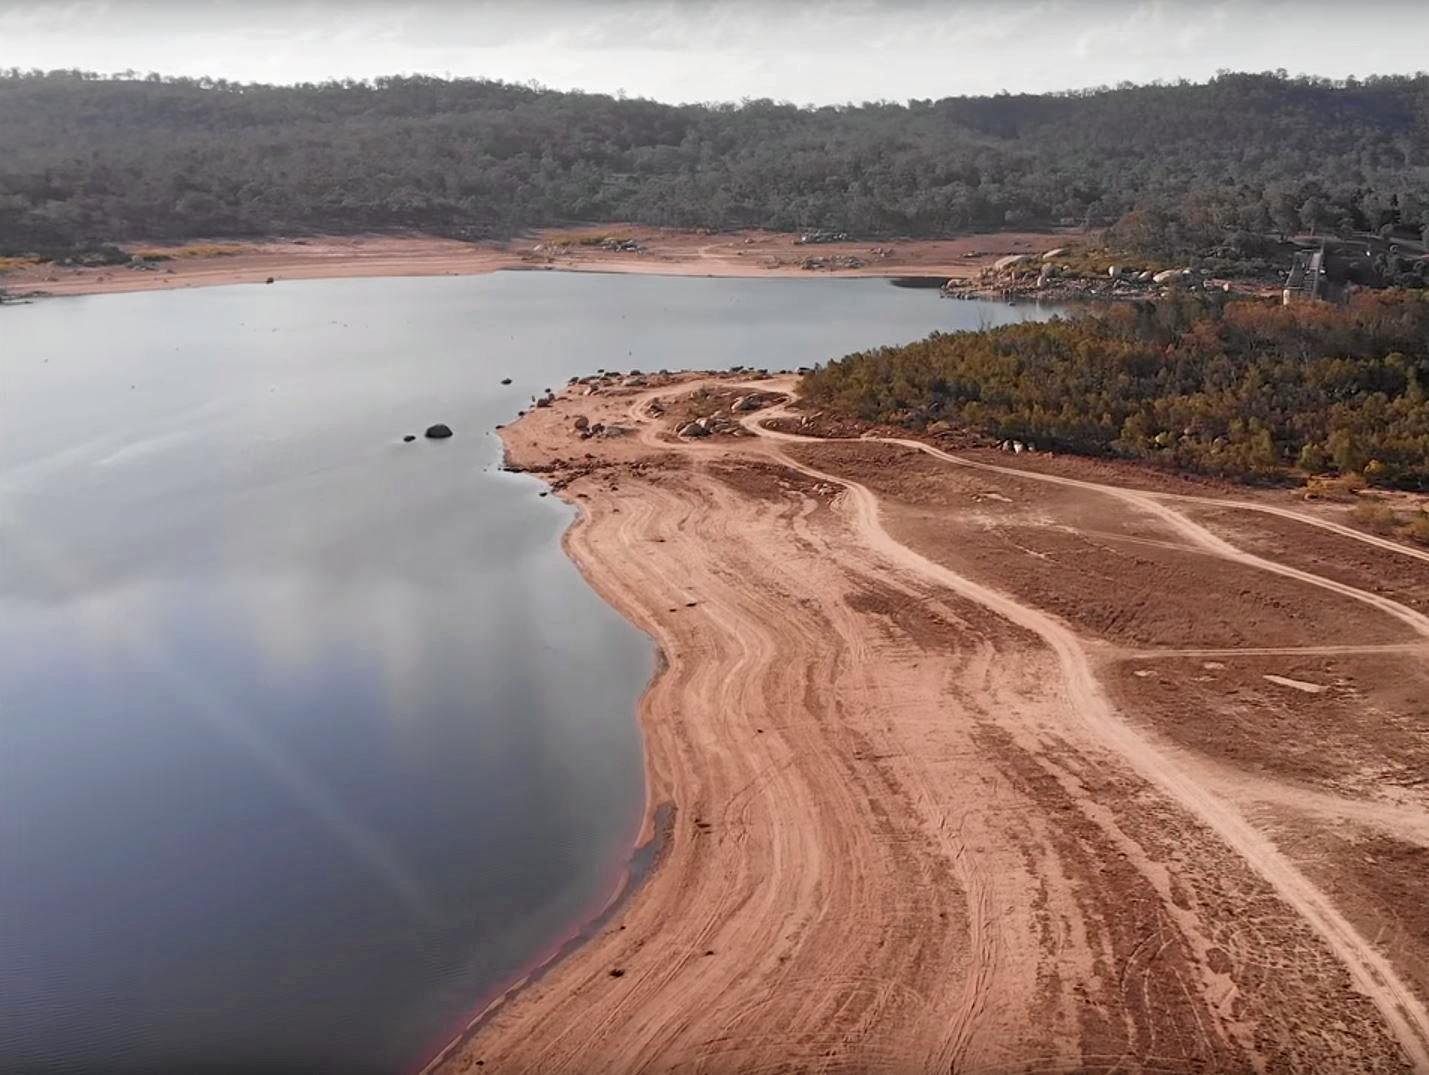 LOW LEVELS: David Lammert Jannenga has been taking photographs of Warwick's stunning Leslie Dam for four years and has never seen it so low.